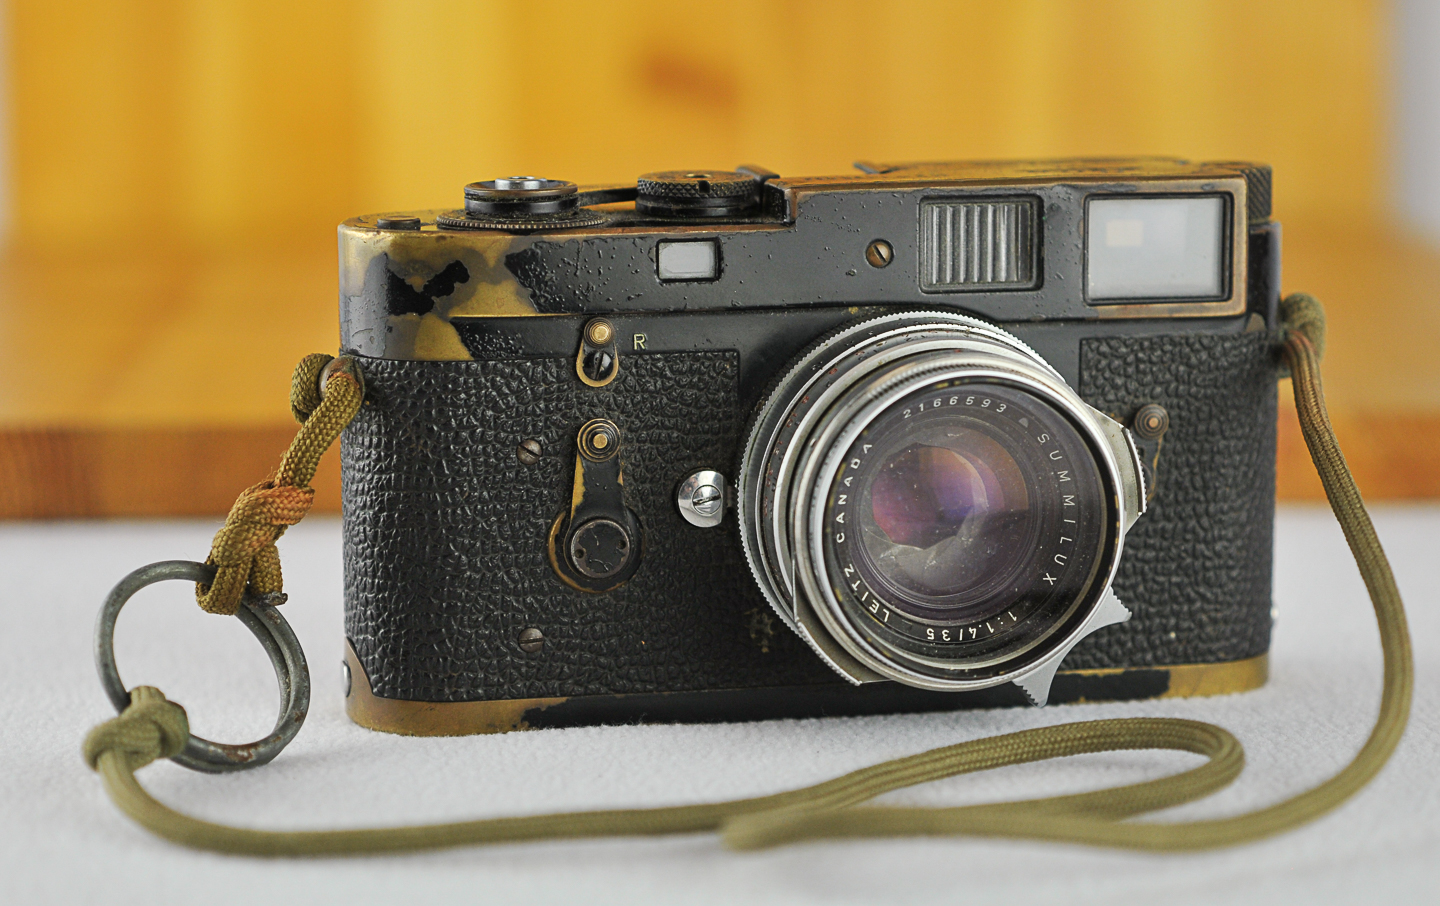 - Sean Flynn's camera, a Leica M2. Note the Grenade Pin on the strap.